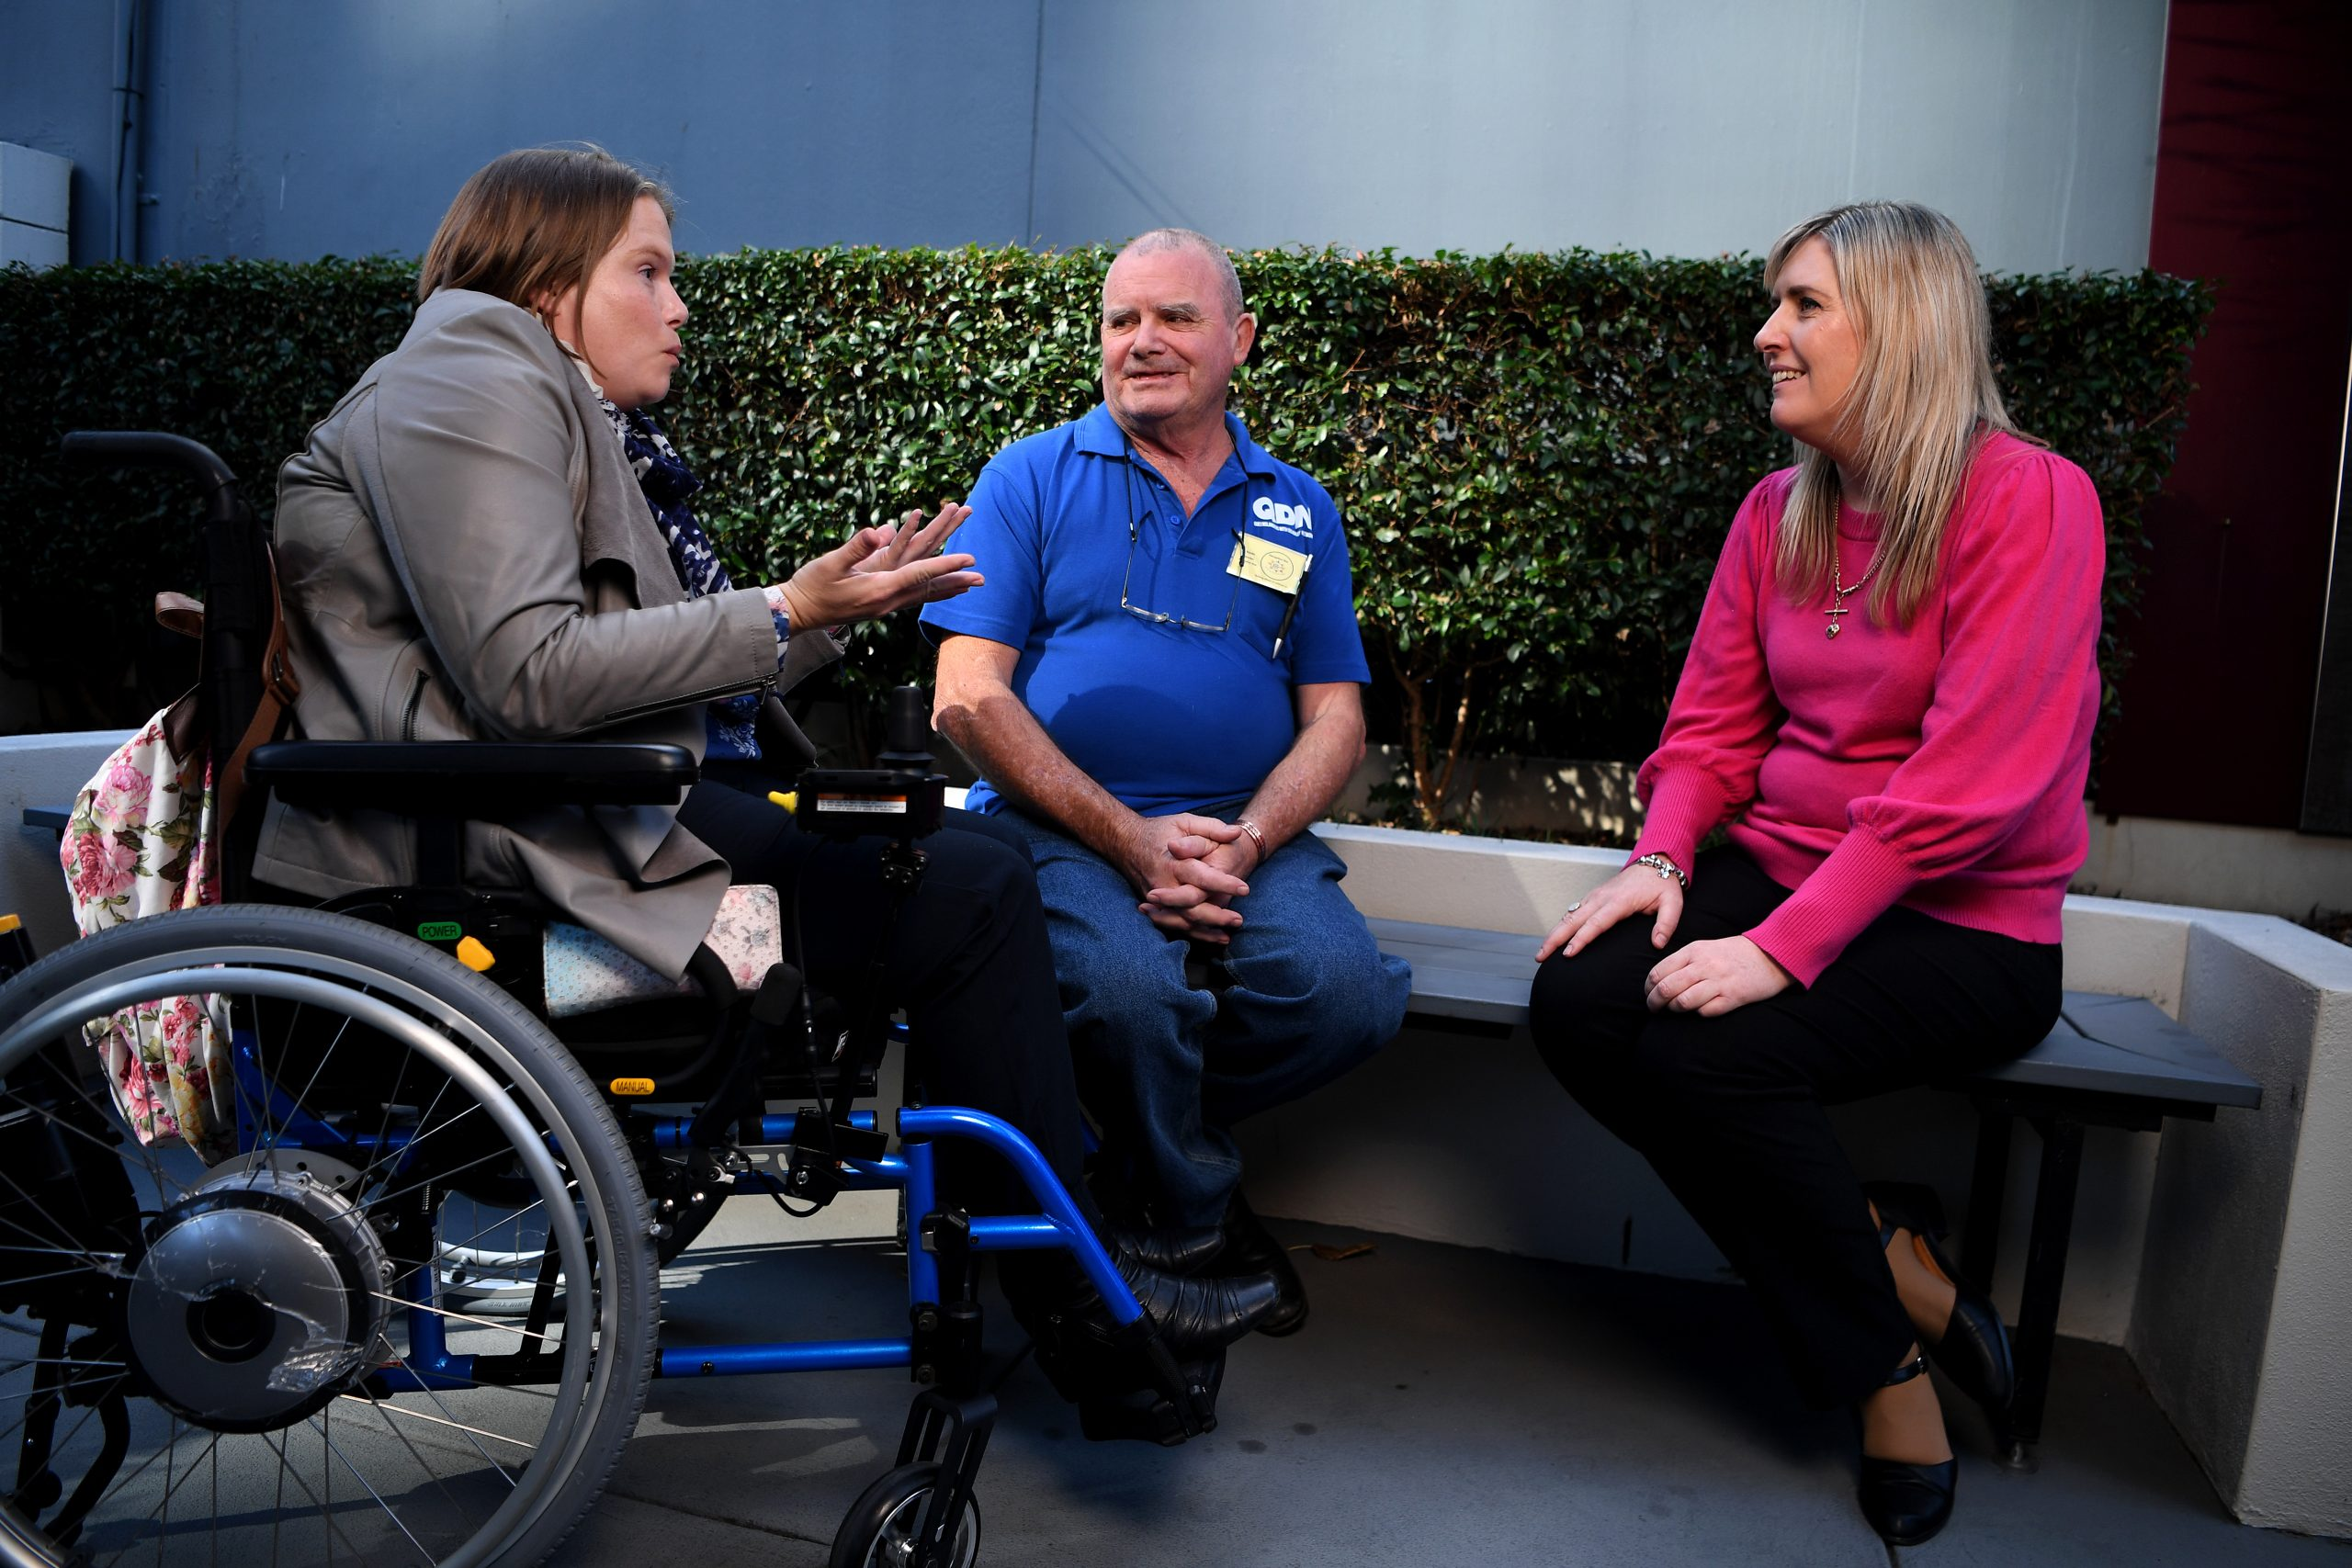 A woman in a wheelchair is holding her arms out in expression, and talking towards another man and woman who are seated on a bench in front of a bush and are looking at her.